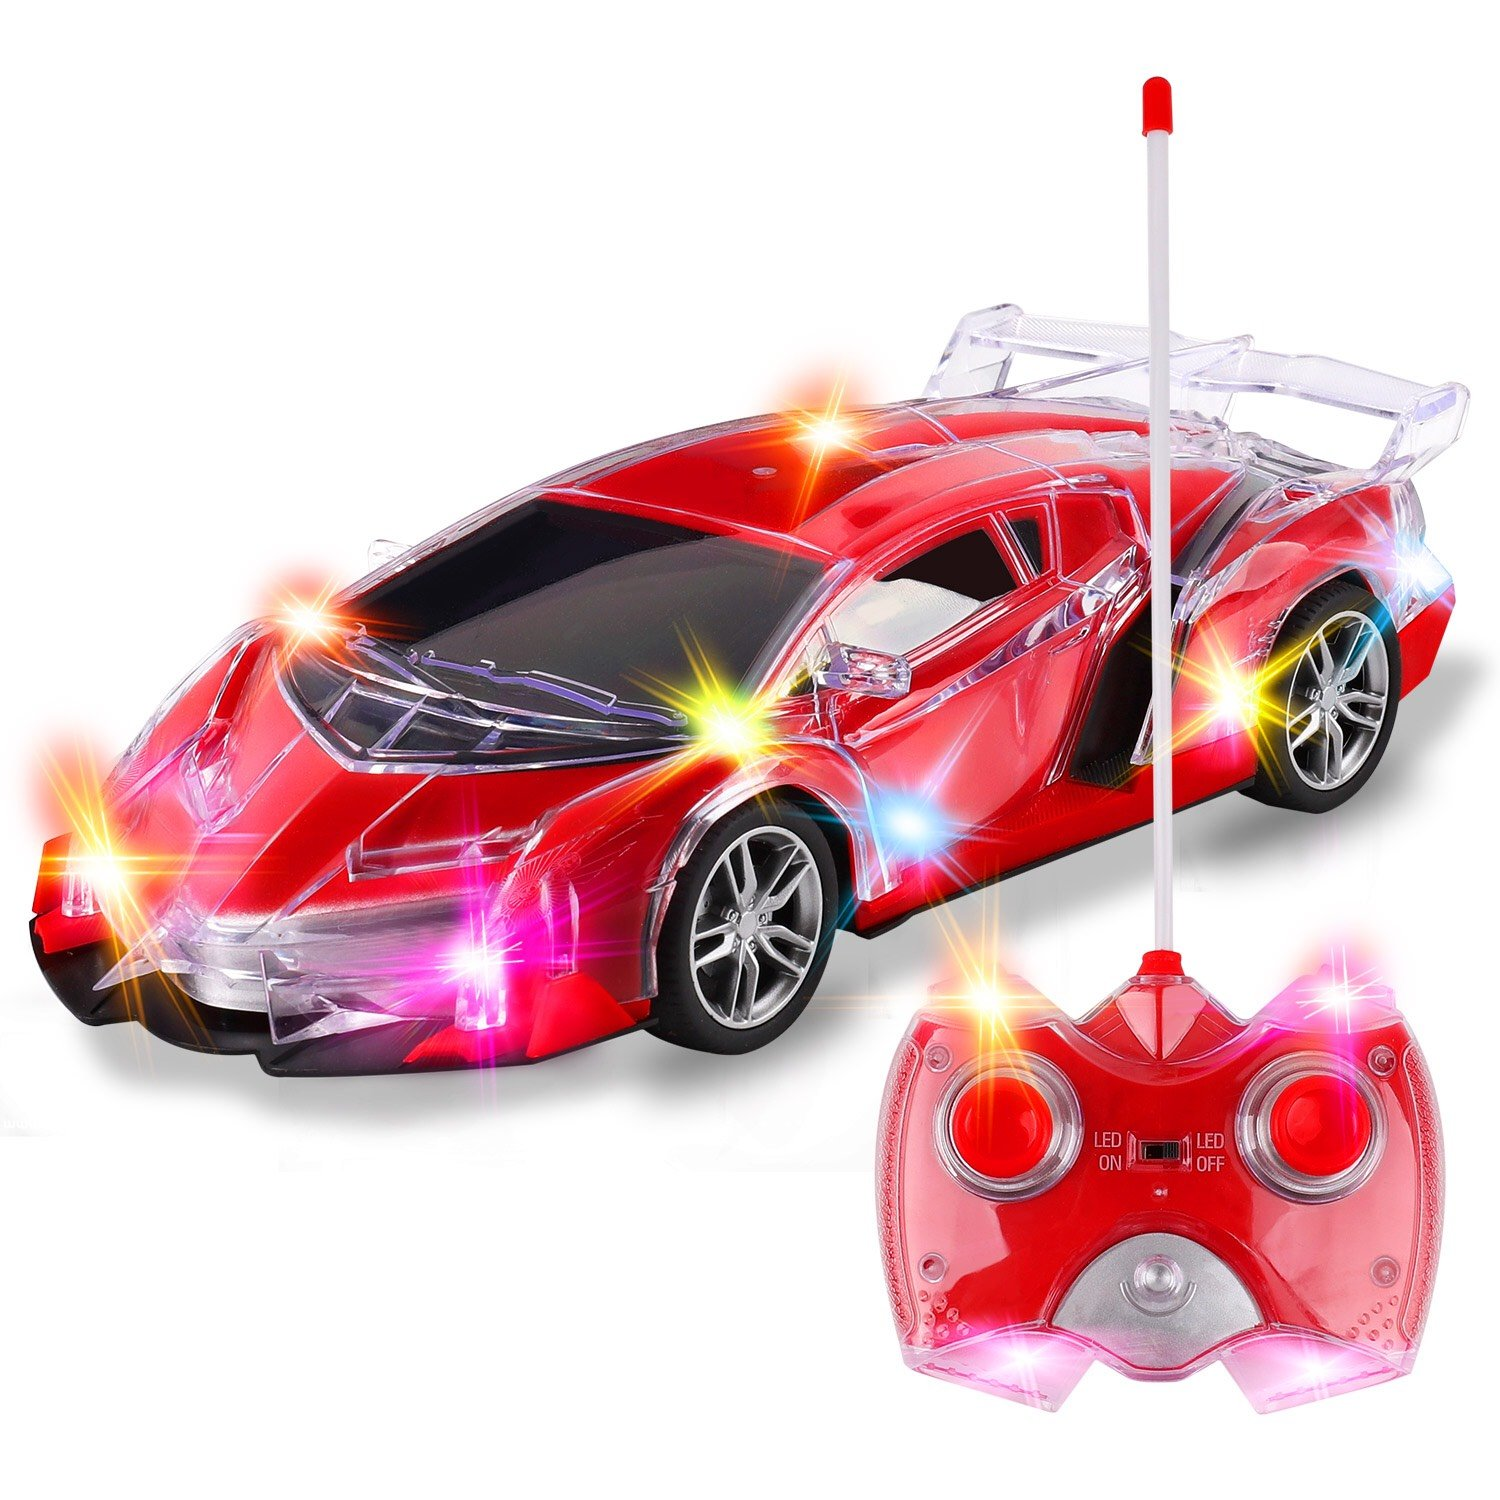 Light up RC Remote Control Racing Car | 1:24 Scale Radio Control Sports Car Flashing LED Lights | Ideal Gift Toy Kids